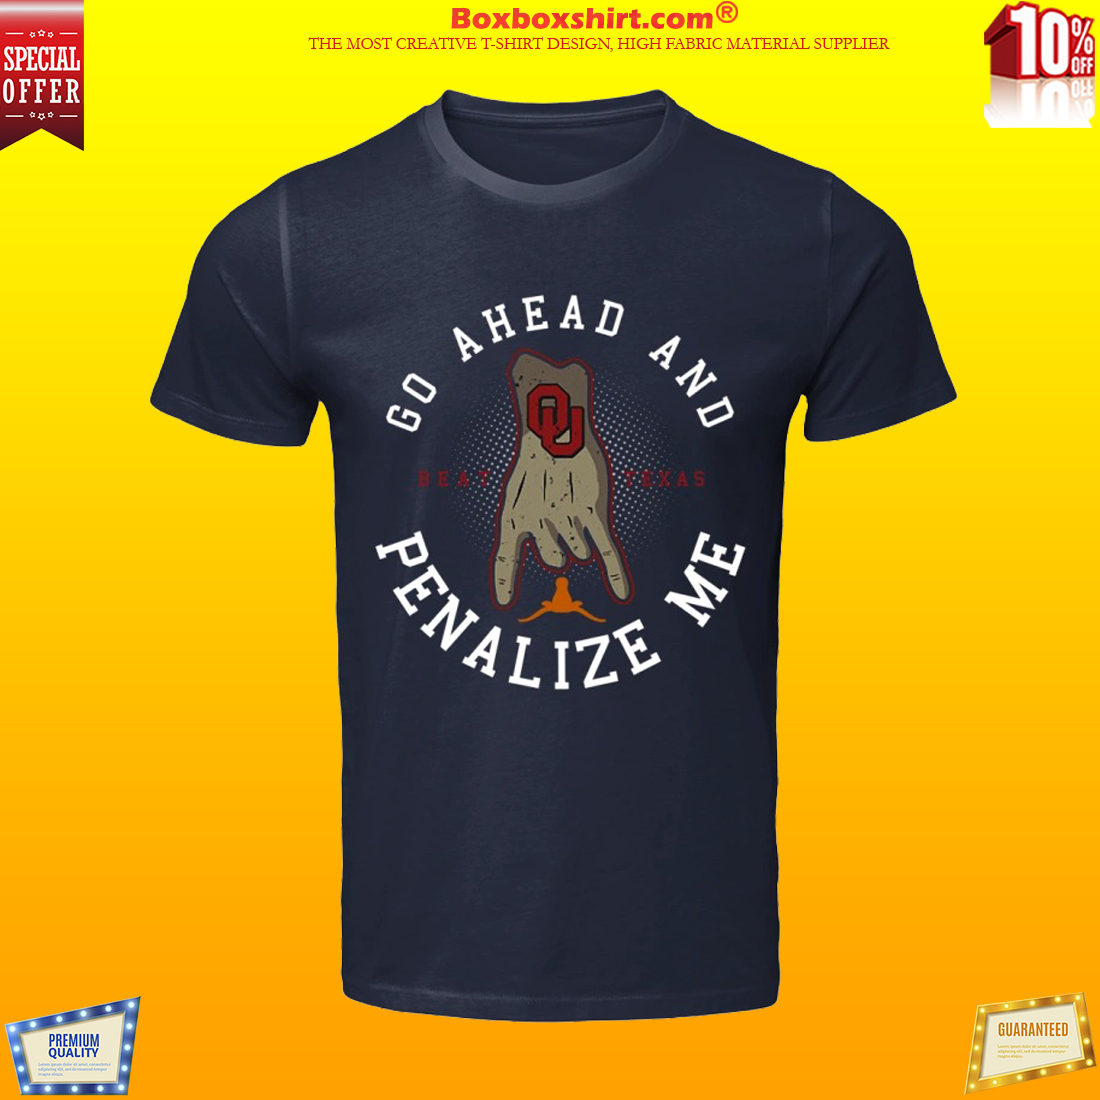 Beat Texas go ahead and penalize me shirt